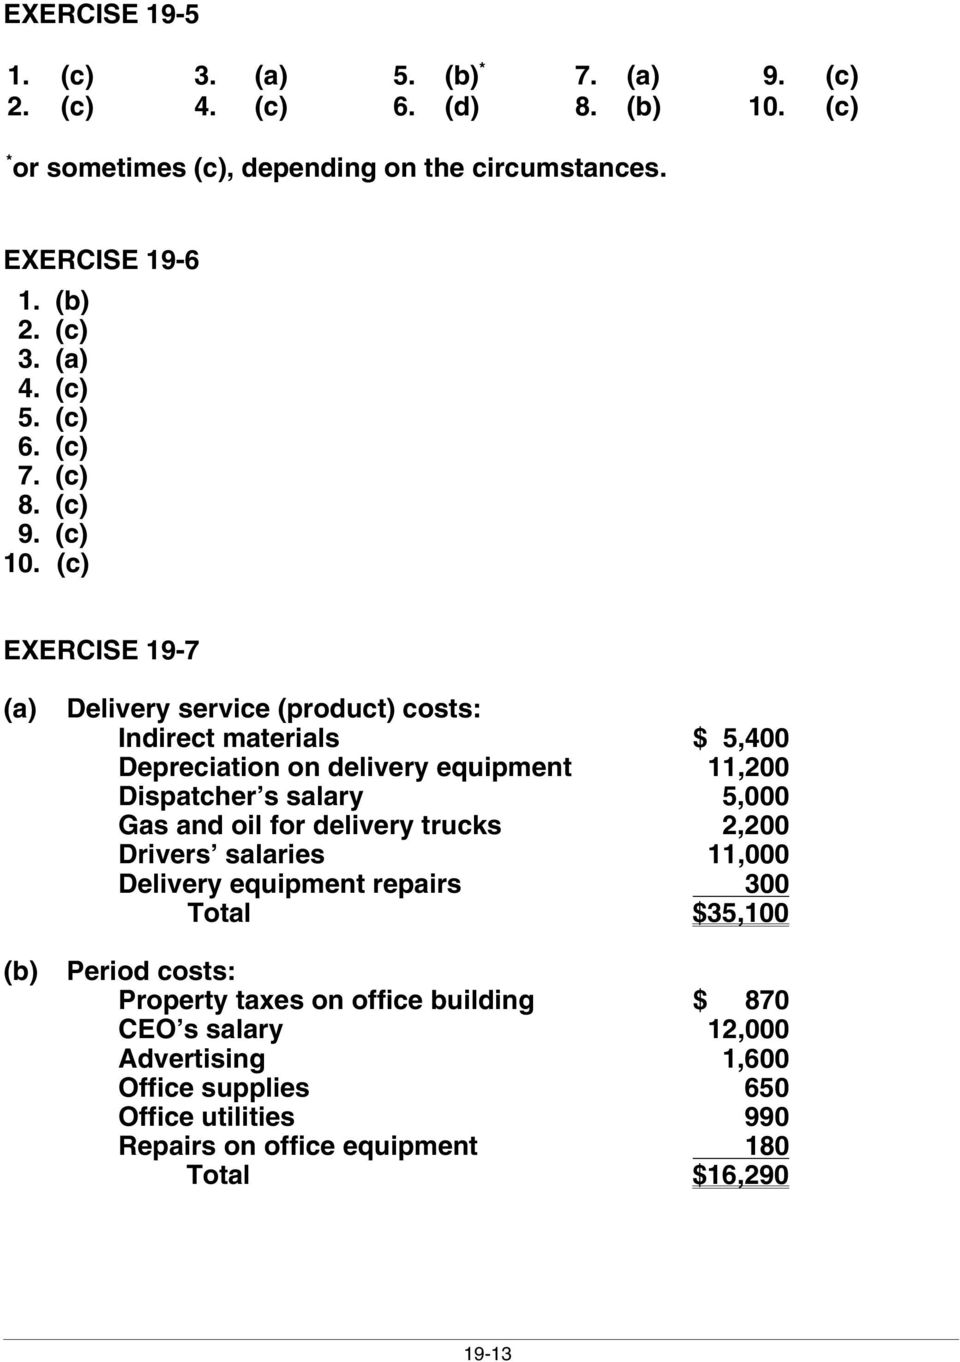 CHAPTER 19  Managerial Accounting  Brief 1, 2, , 5, 6, 7 2